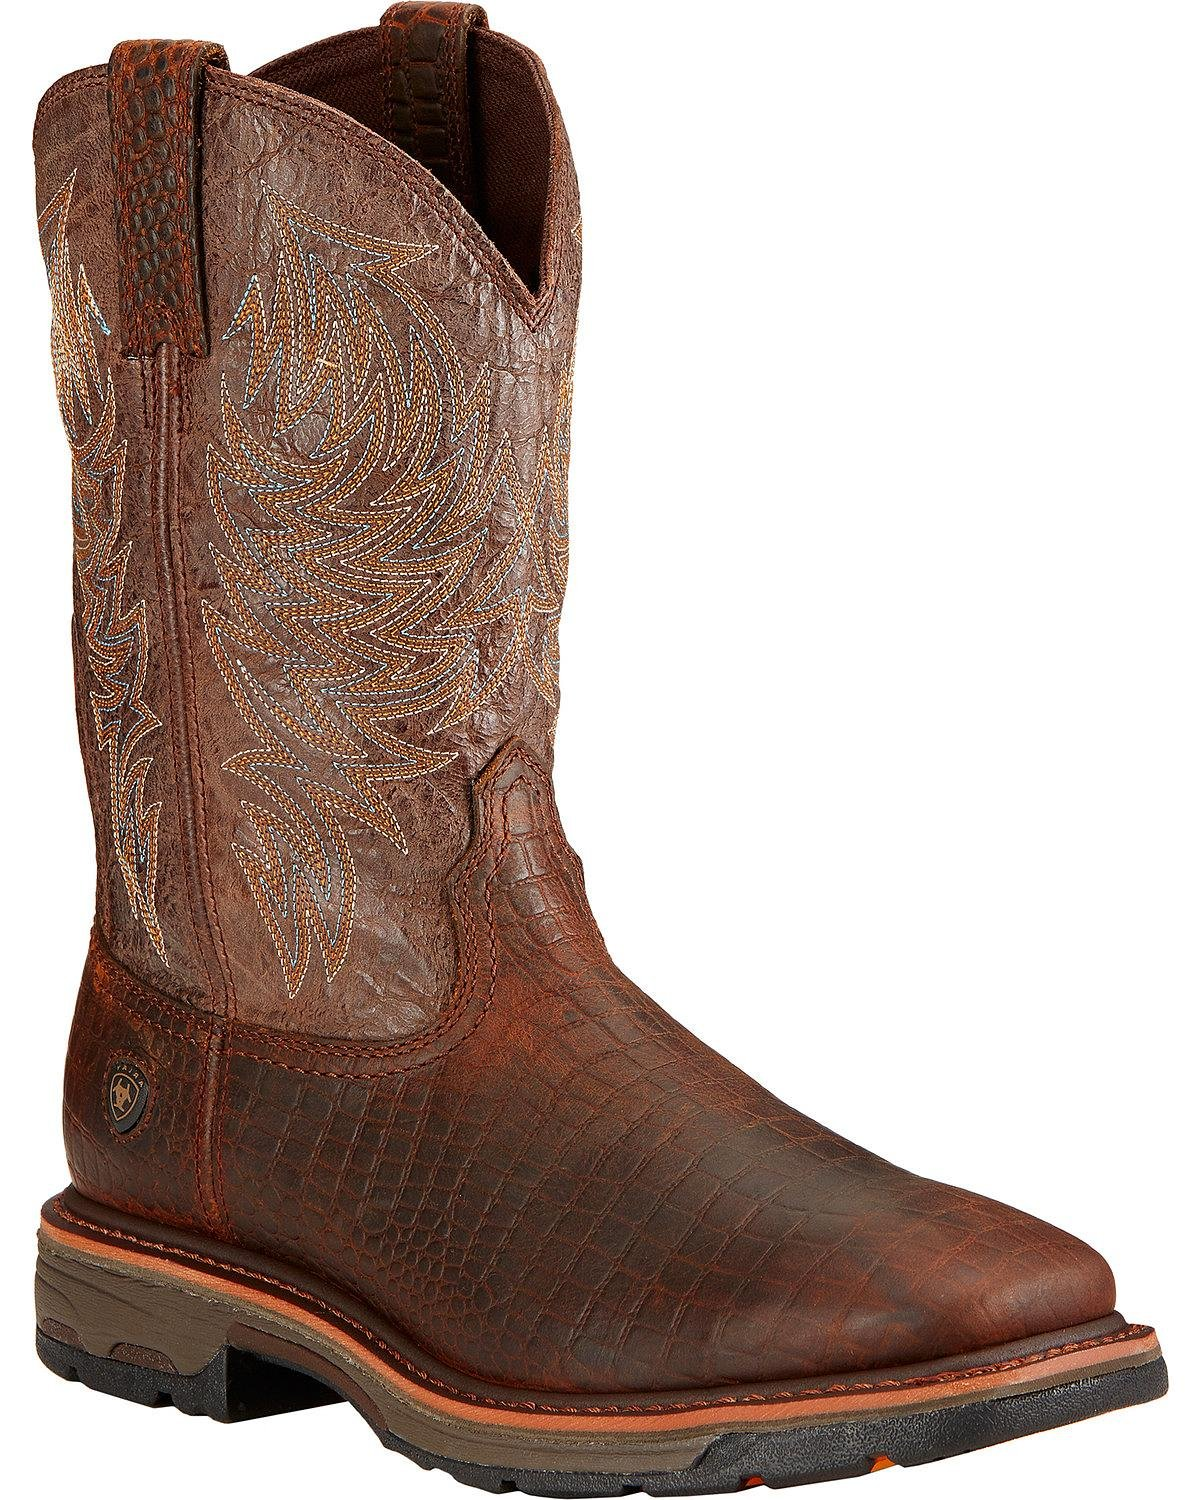 Ariat Men's Workhog Wide Square Toe Work Boot Ariat Work